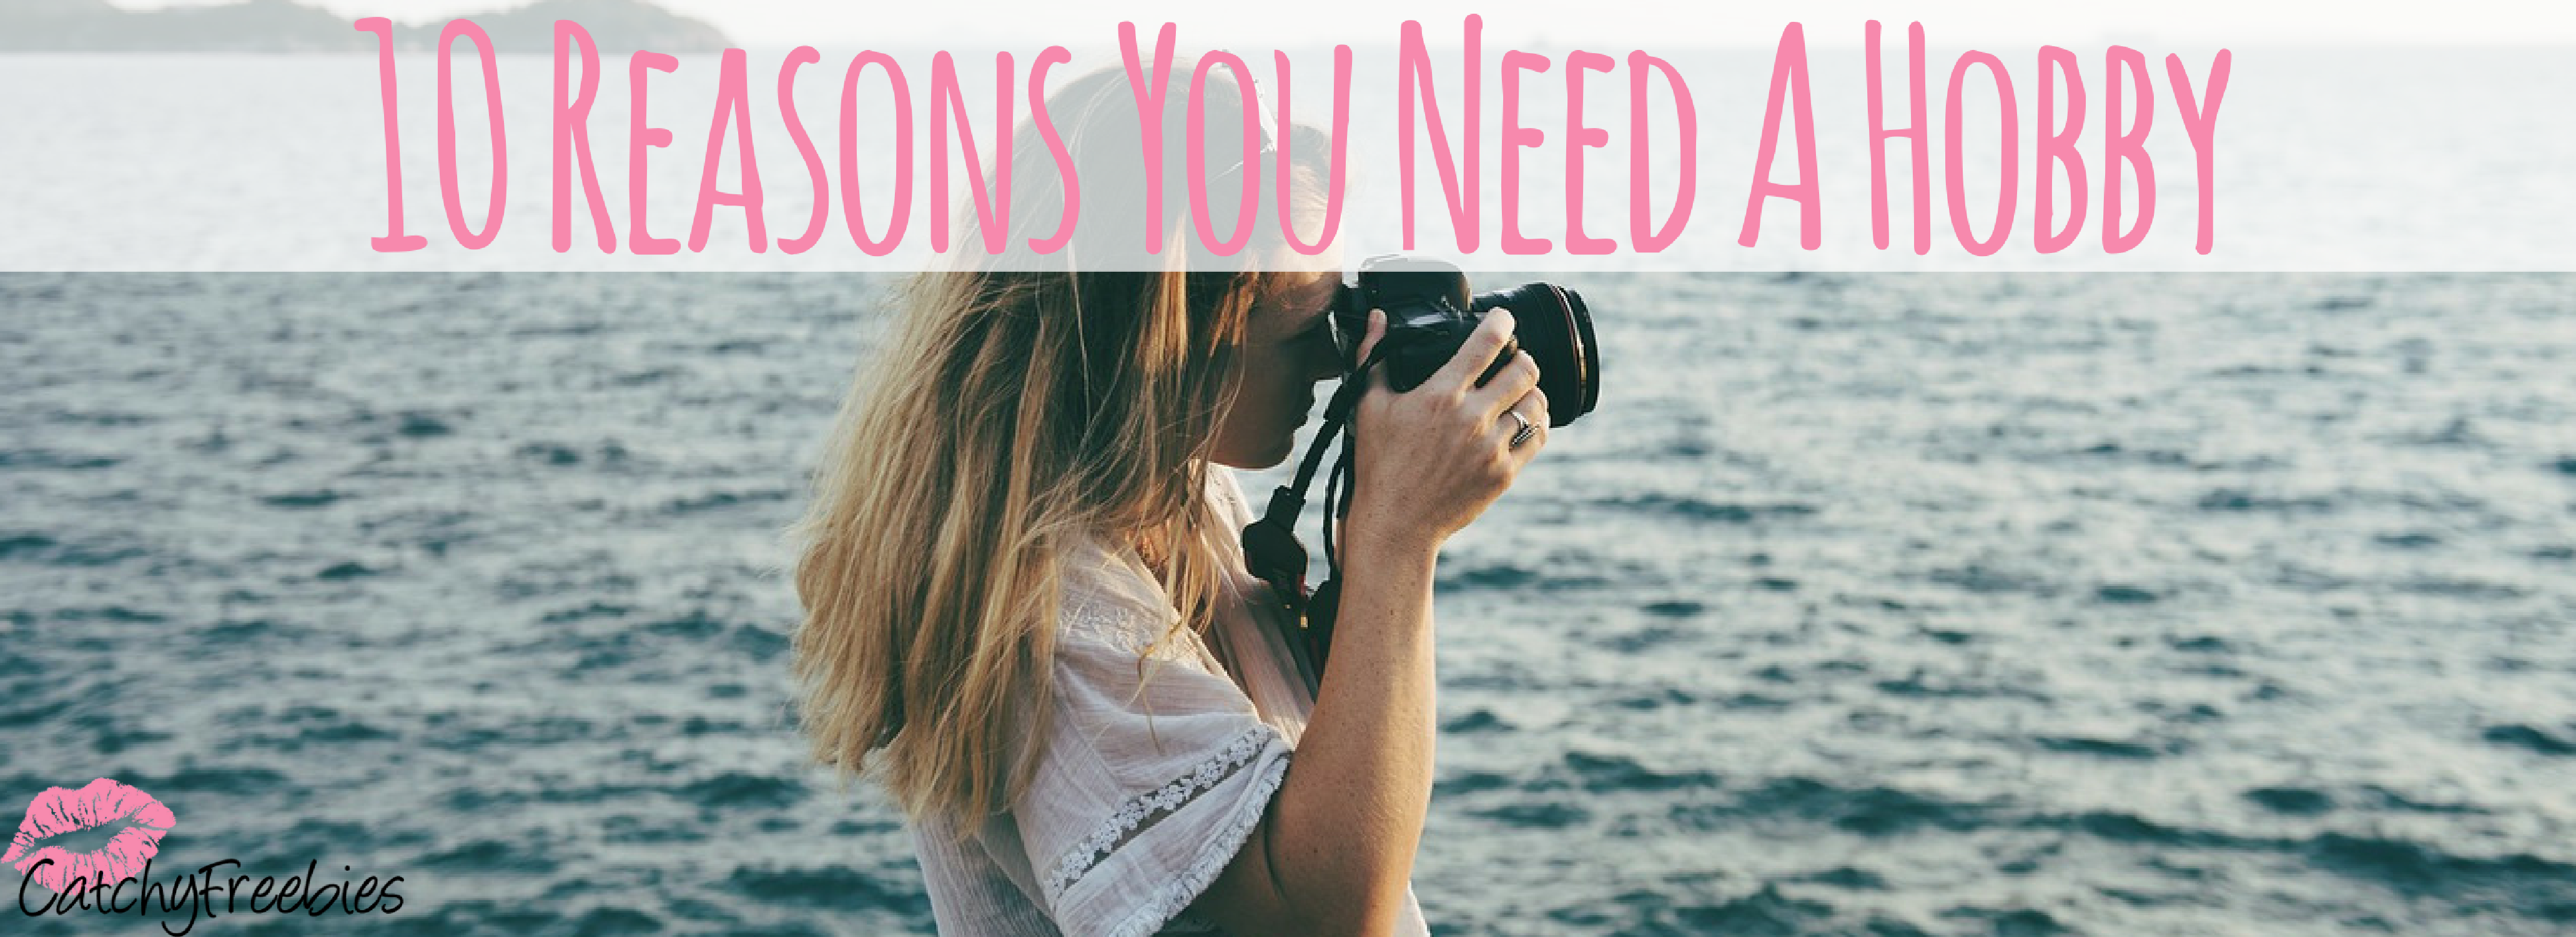 10 Reasons You Need A Hobby